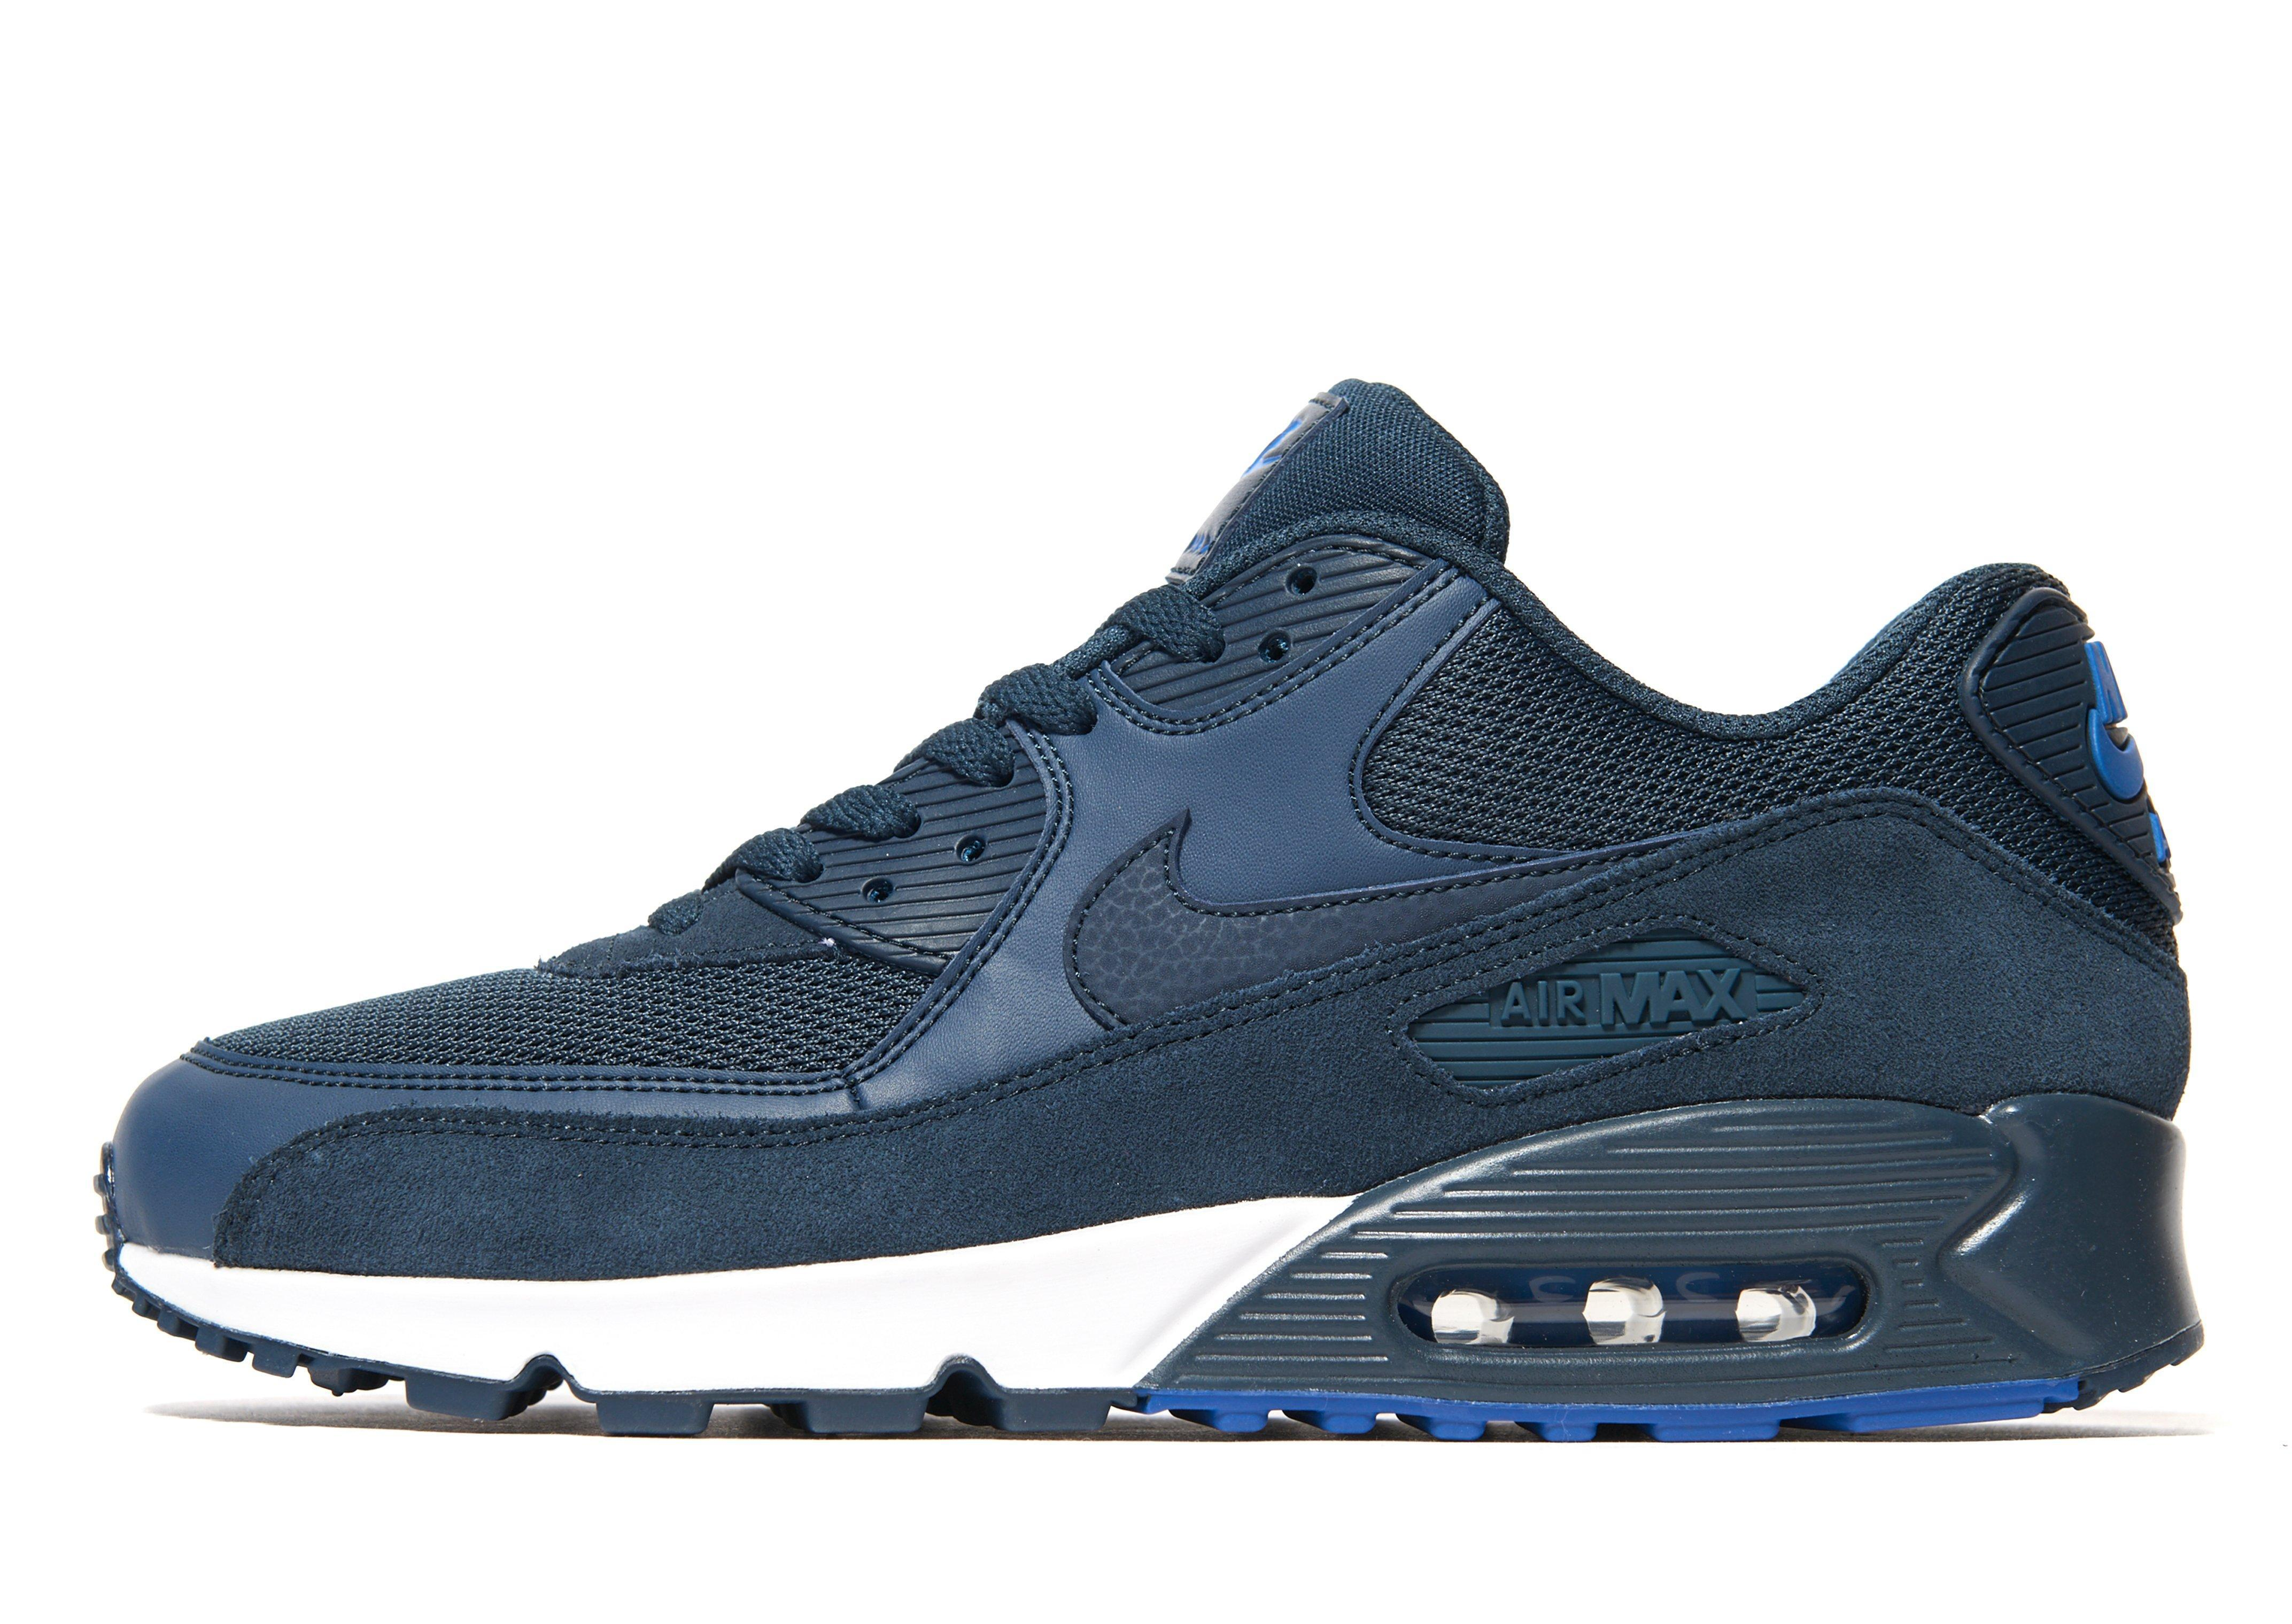 jd air max black trainers